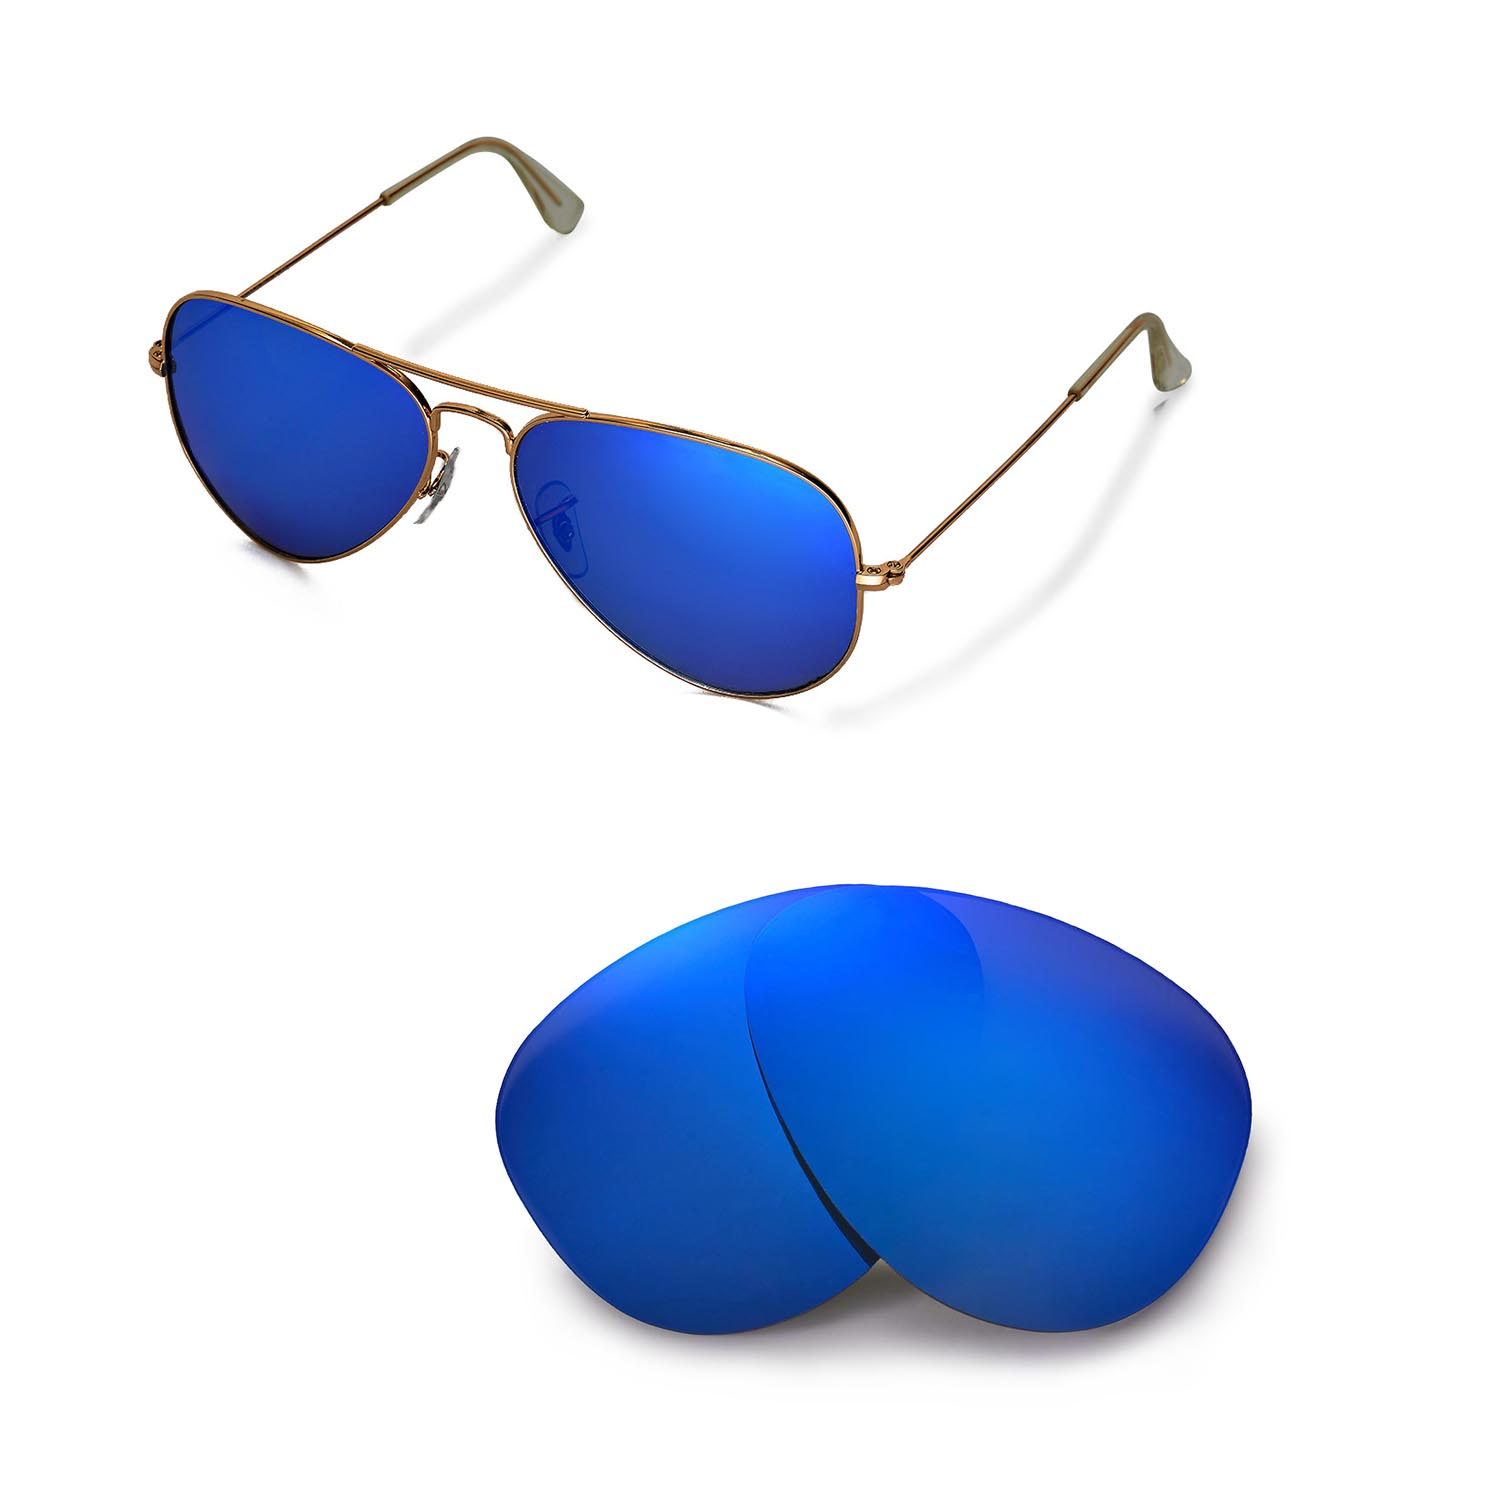 5fce41a8022 Details about New WL Polarized Ice Blue Lenses For Ray-Ban Aviator Large  Metal RB3025 58mm